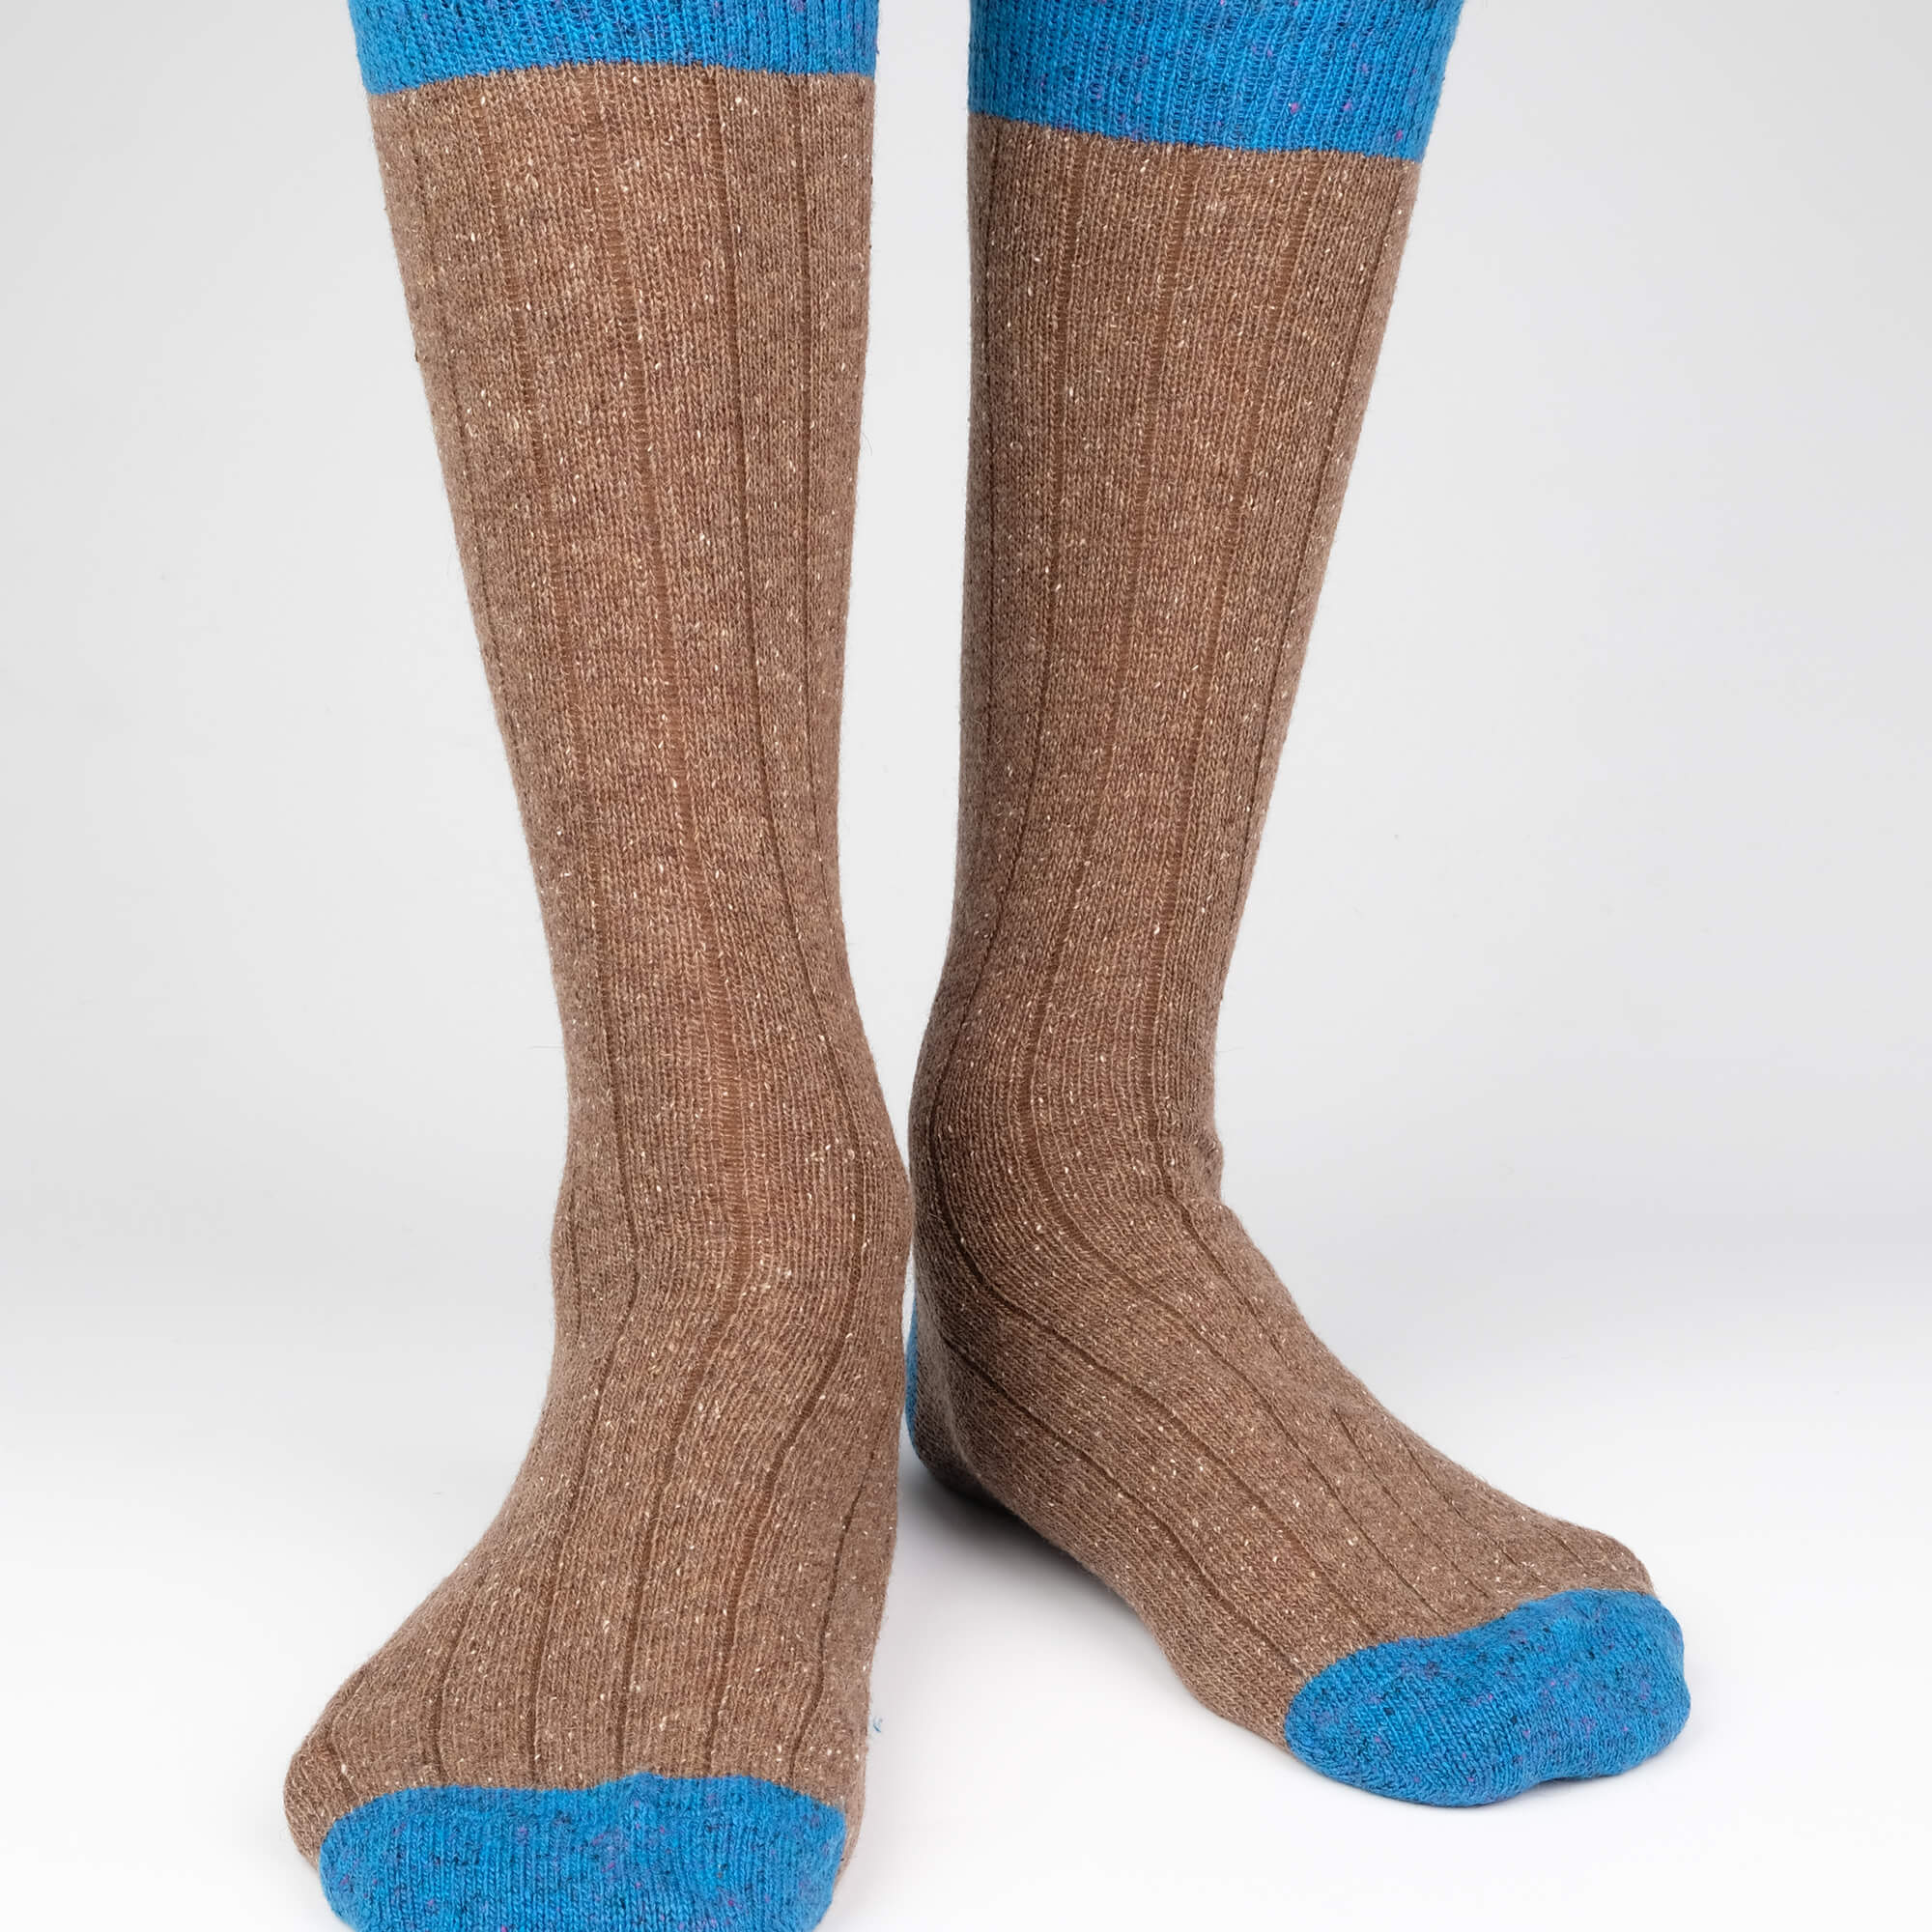 Mens Socks - Tweed Rib Men's Socks - Brown⎪Etiquette Clothiers